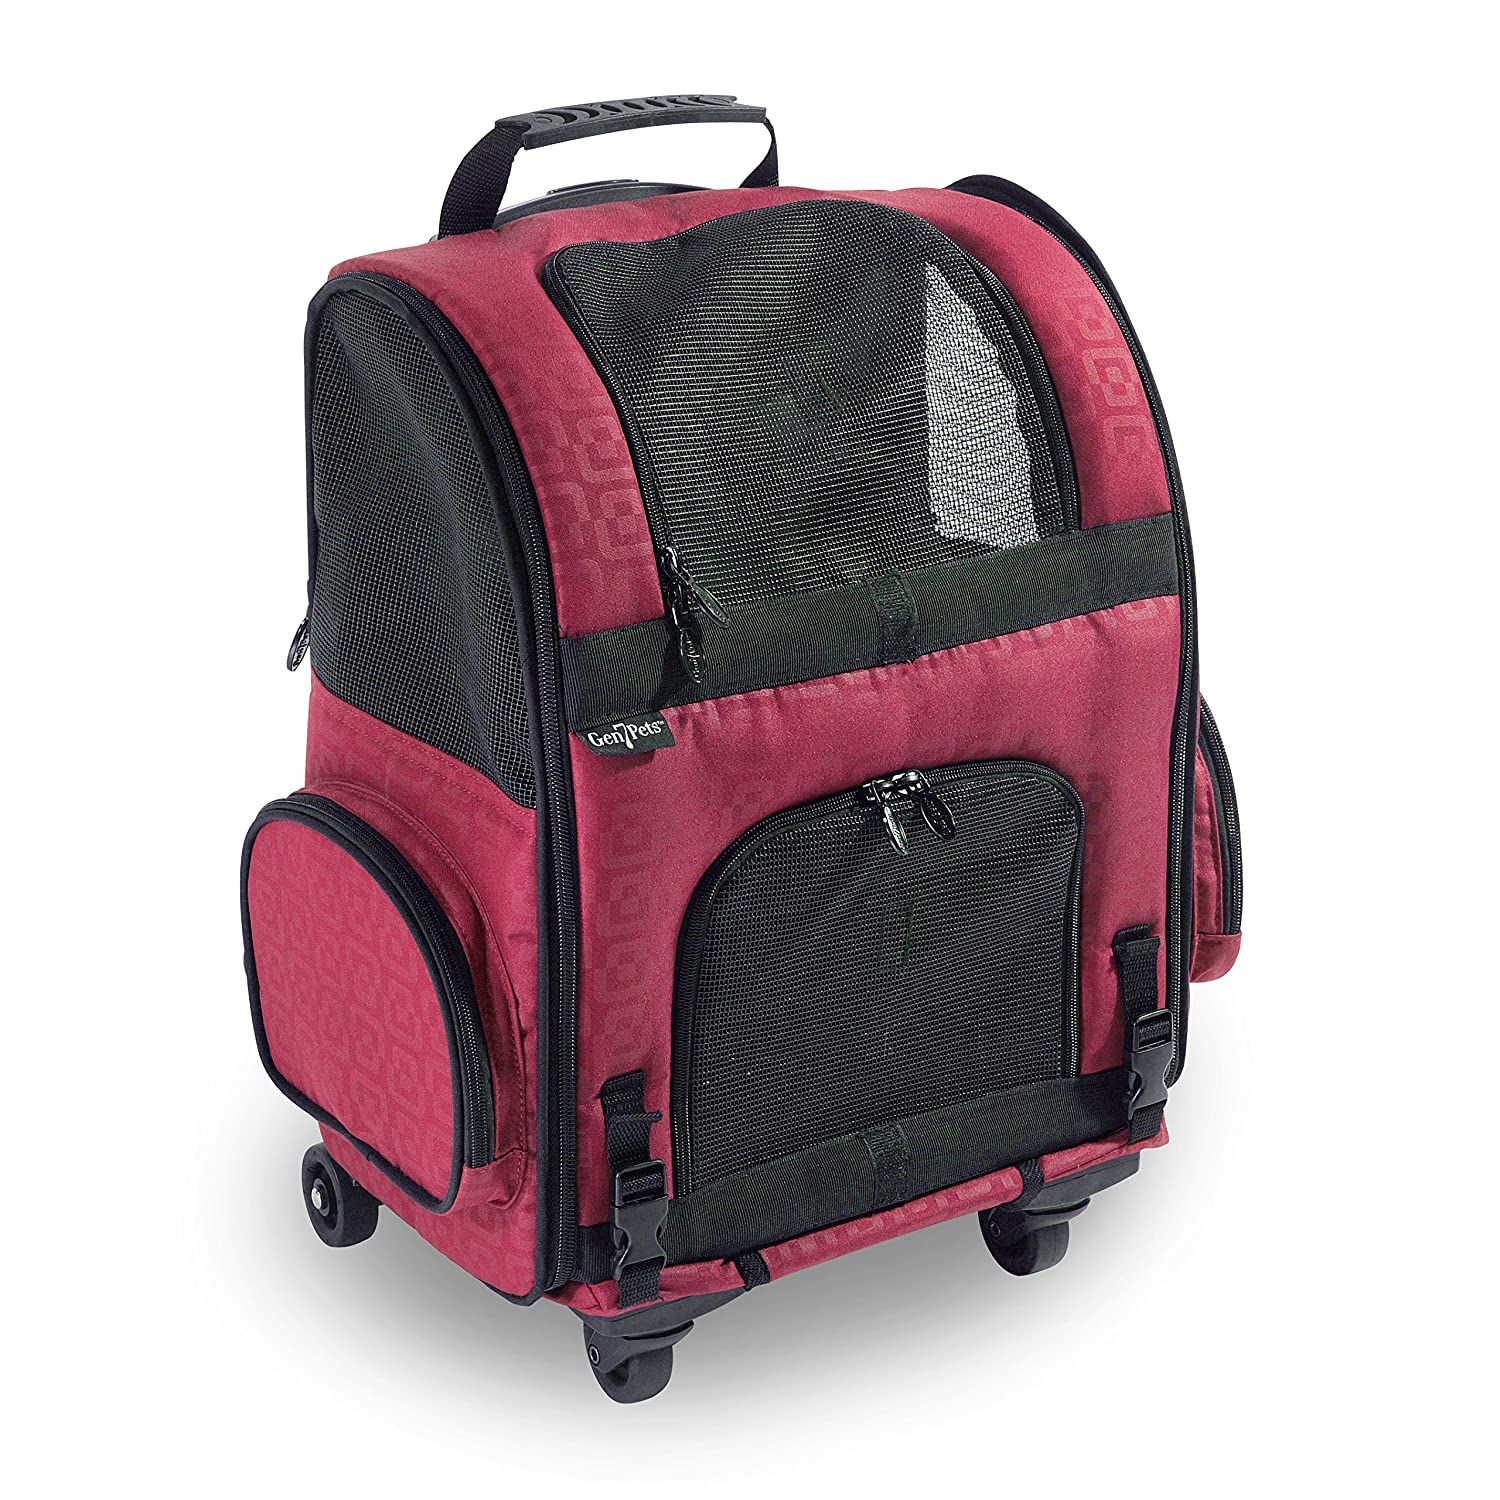 RED GEOMETRIC Medium RED GEOMETRIC Medium Gen7 Compact Roller Pet Carrier for Dogs and Cats Compact and Lightweight Congreens to a Backpack